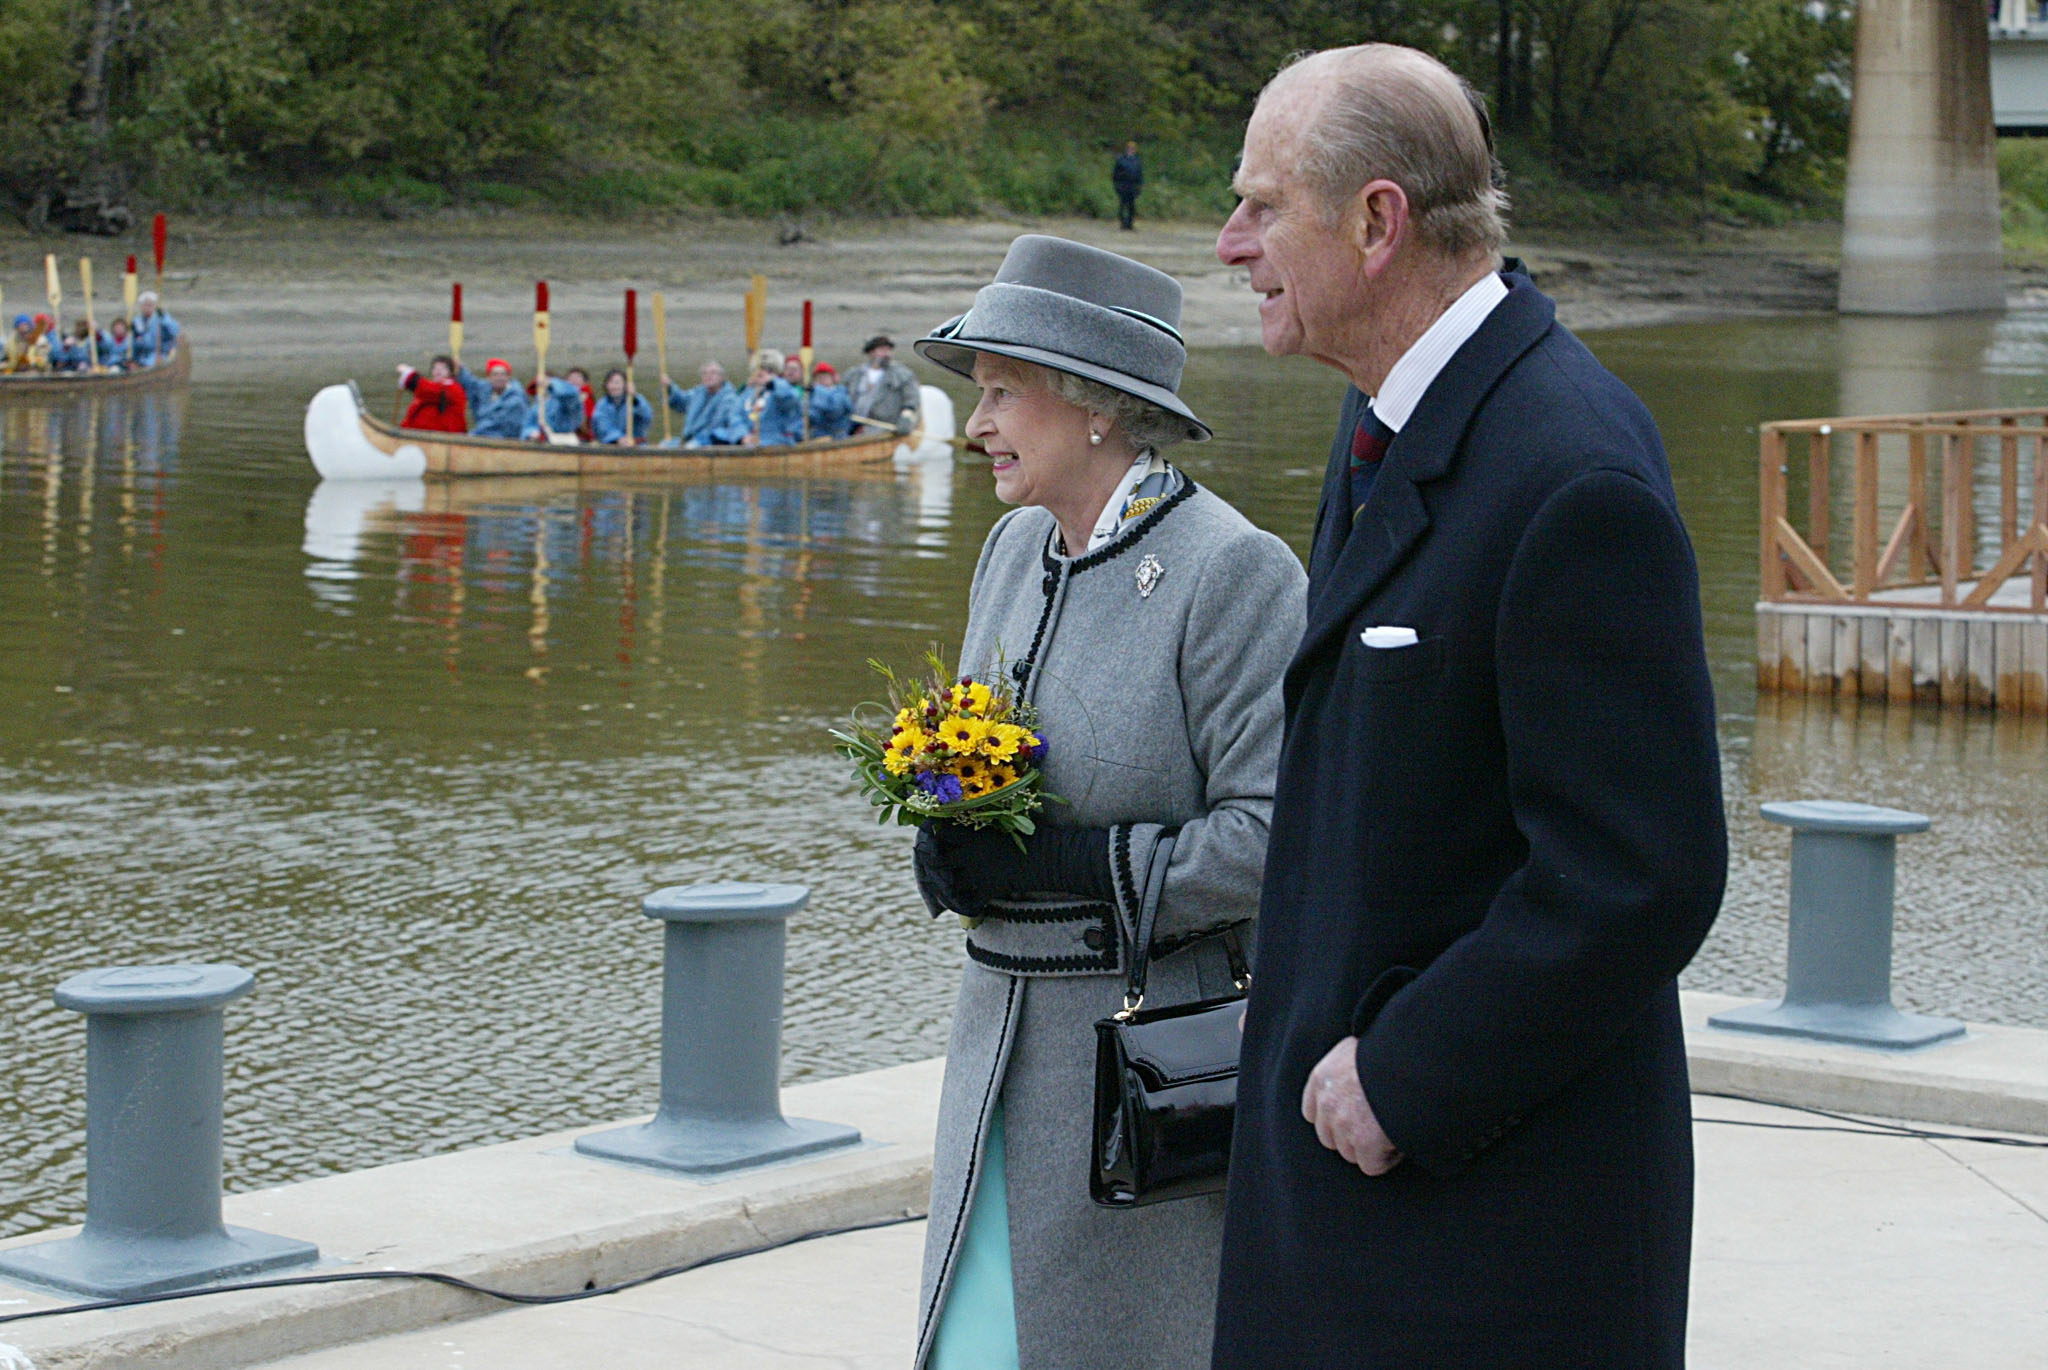 Queen Elizabeth II and the Duke of Edinburgh view ceremonies along the Red River in 2002 in Winnipeg on her 20th trip to Canada, the last stop of a year-long jubilee tour celebrating her 50-year reign.